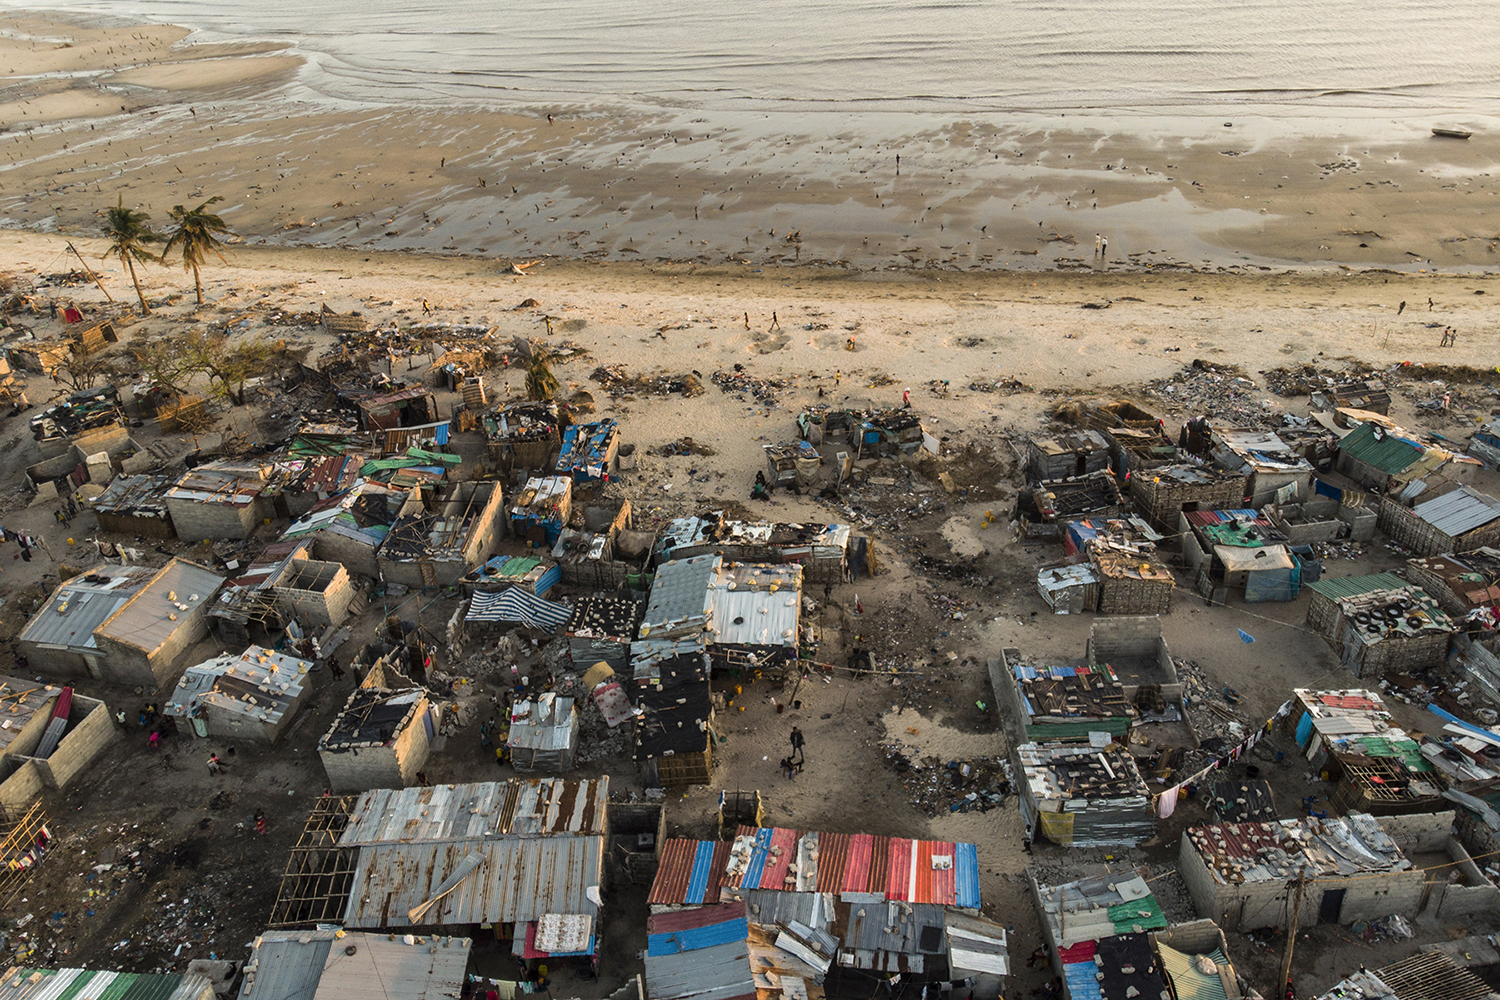 Debris and destroyed buildings left in the wake of Cyclone Idai in the Praia Nova neighbourhood of Beira, Mozambique, on April 1. GUILLEM SARTORIO/AFP/Getty Images